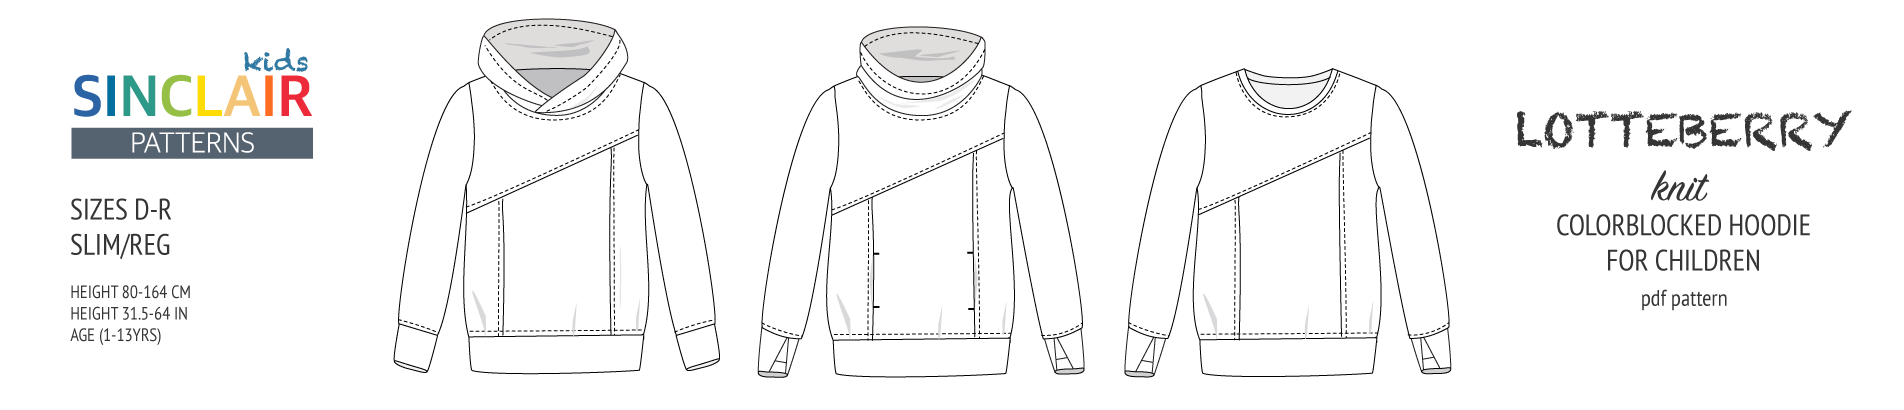 Lotte Lotteberry colorblocked hoodie for children (pdf sewing pattern)